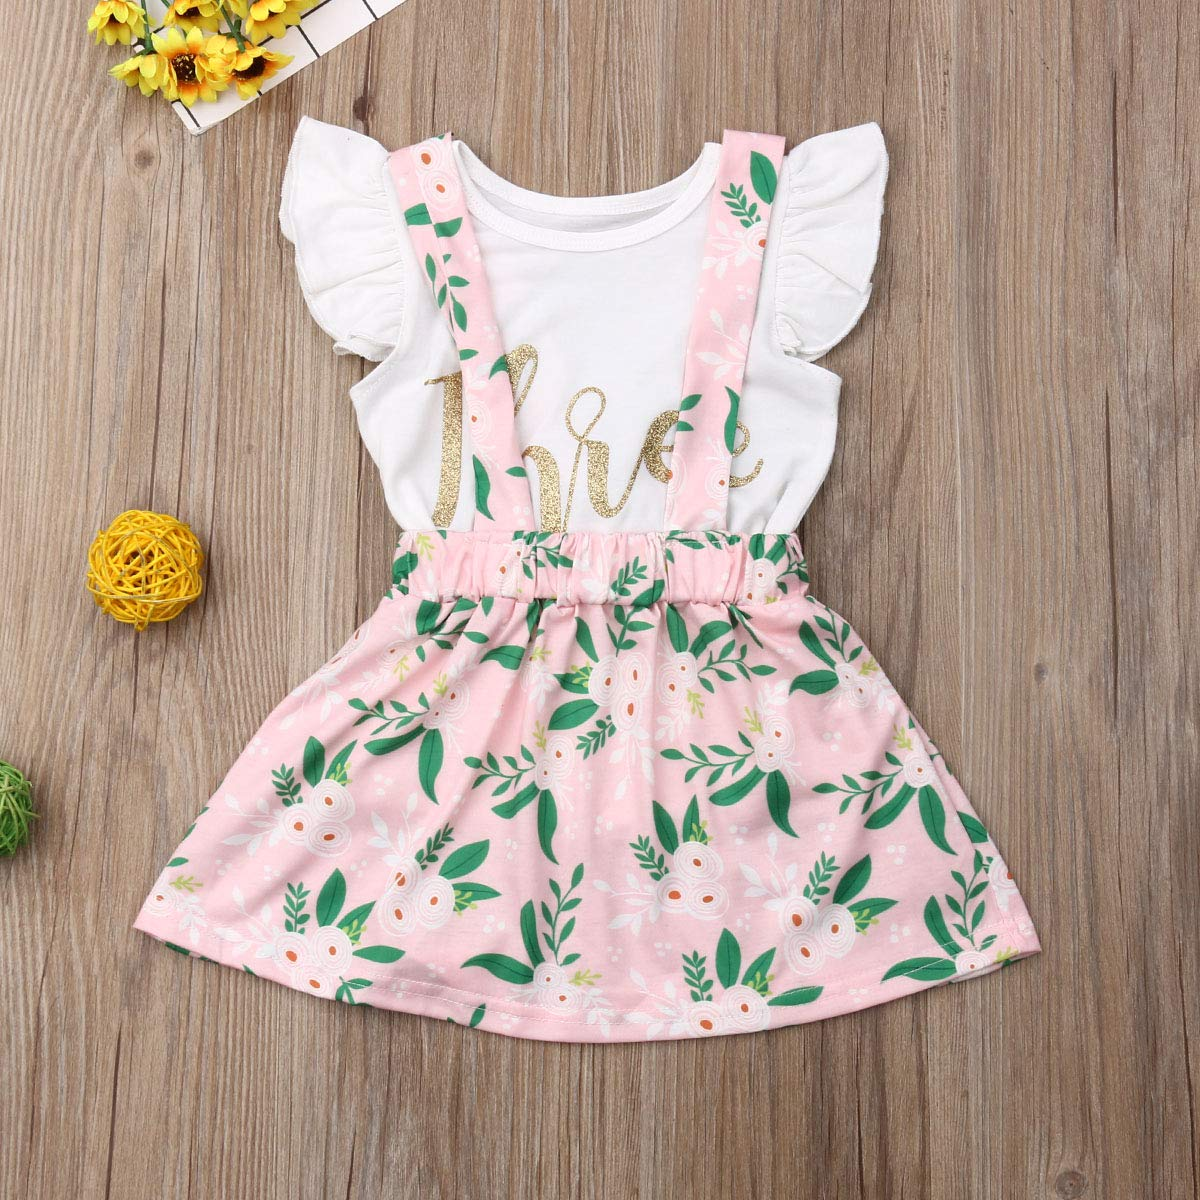 Granny/&Gramps Love Baby Girls Third Birthday Outfits Ruffle Sleeve T-Shirt Top and Floral Suspender Skirts Set